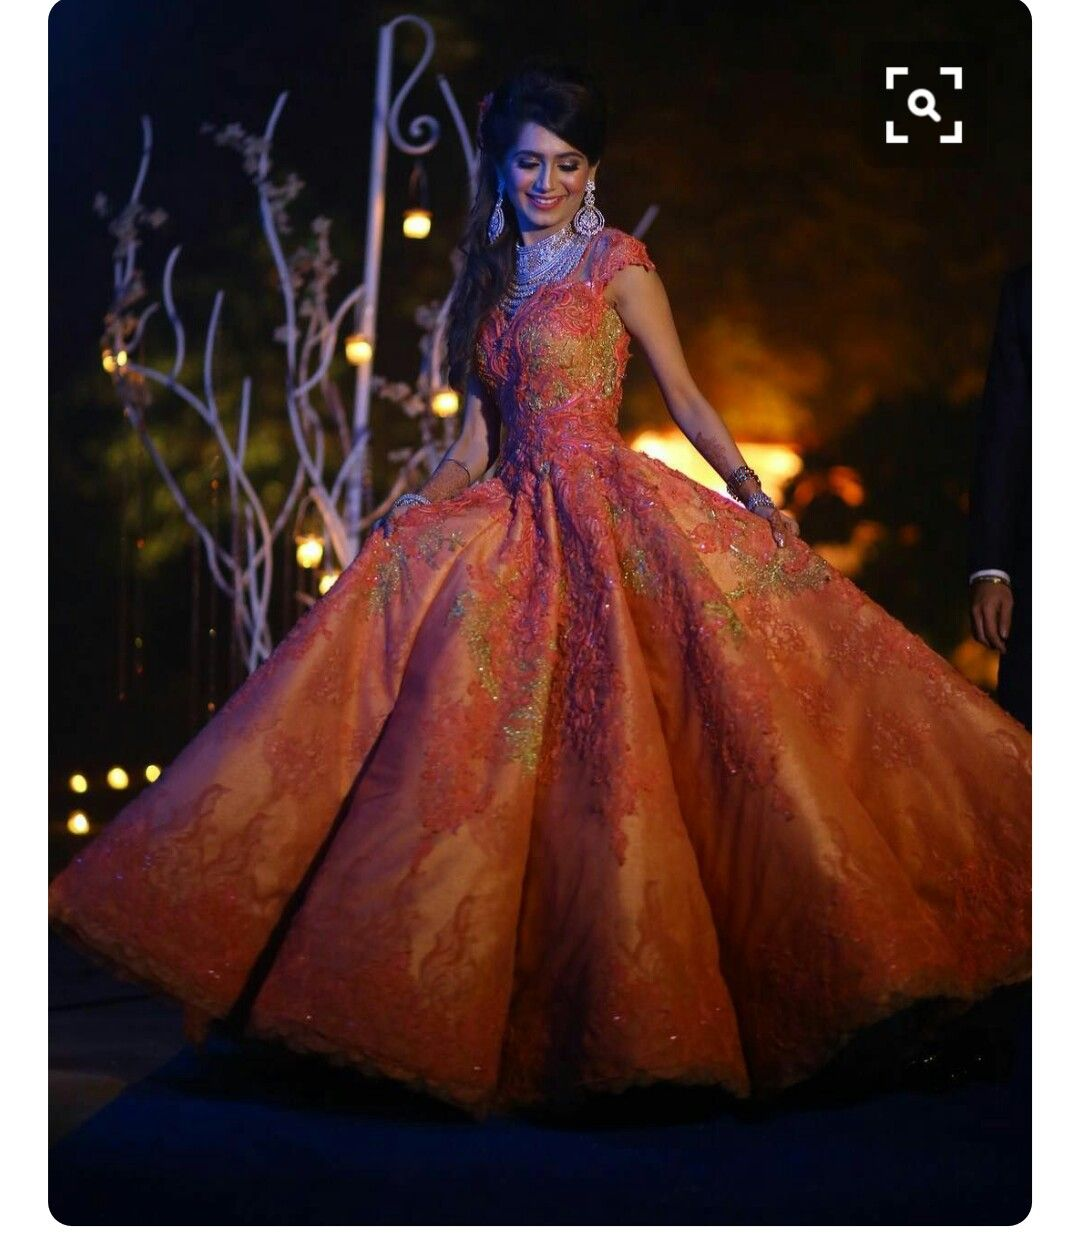 Pin by Puchu p on Bridal | Pinterest | Gowns, Indian wear and Ethnic